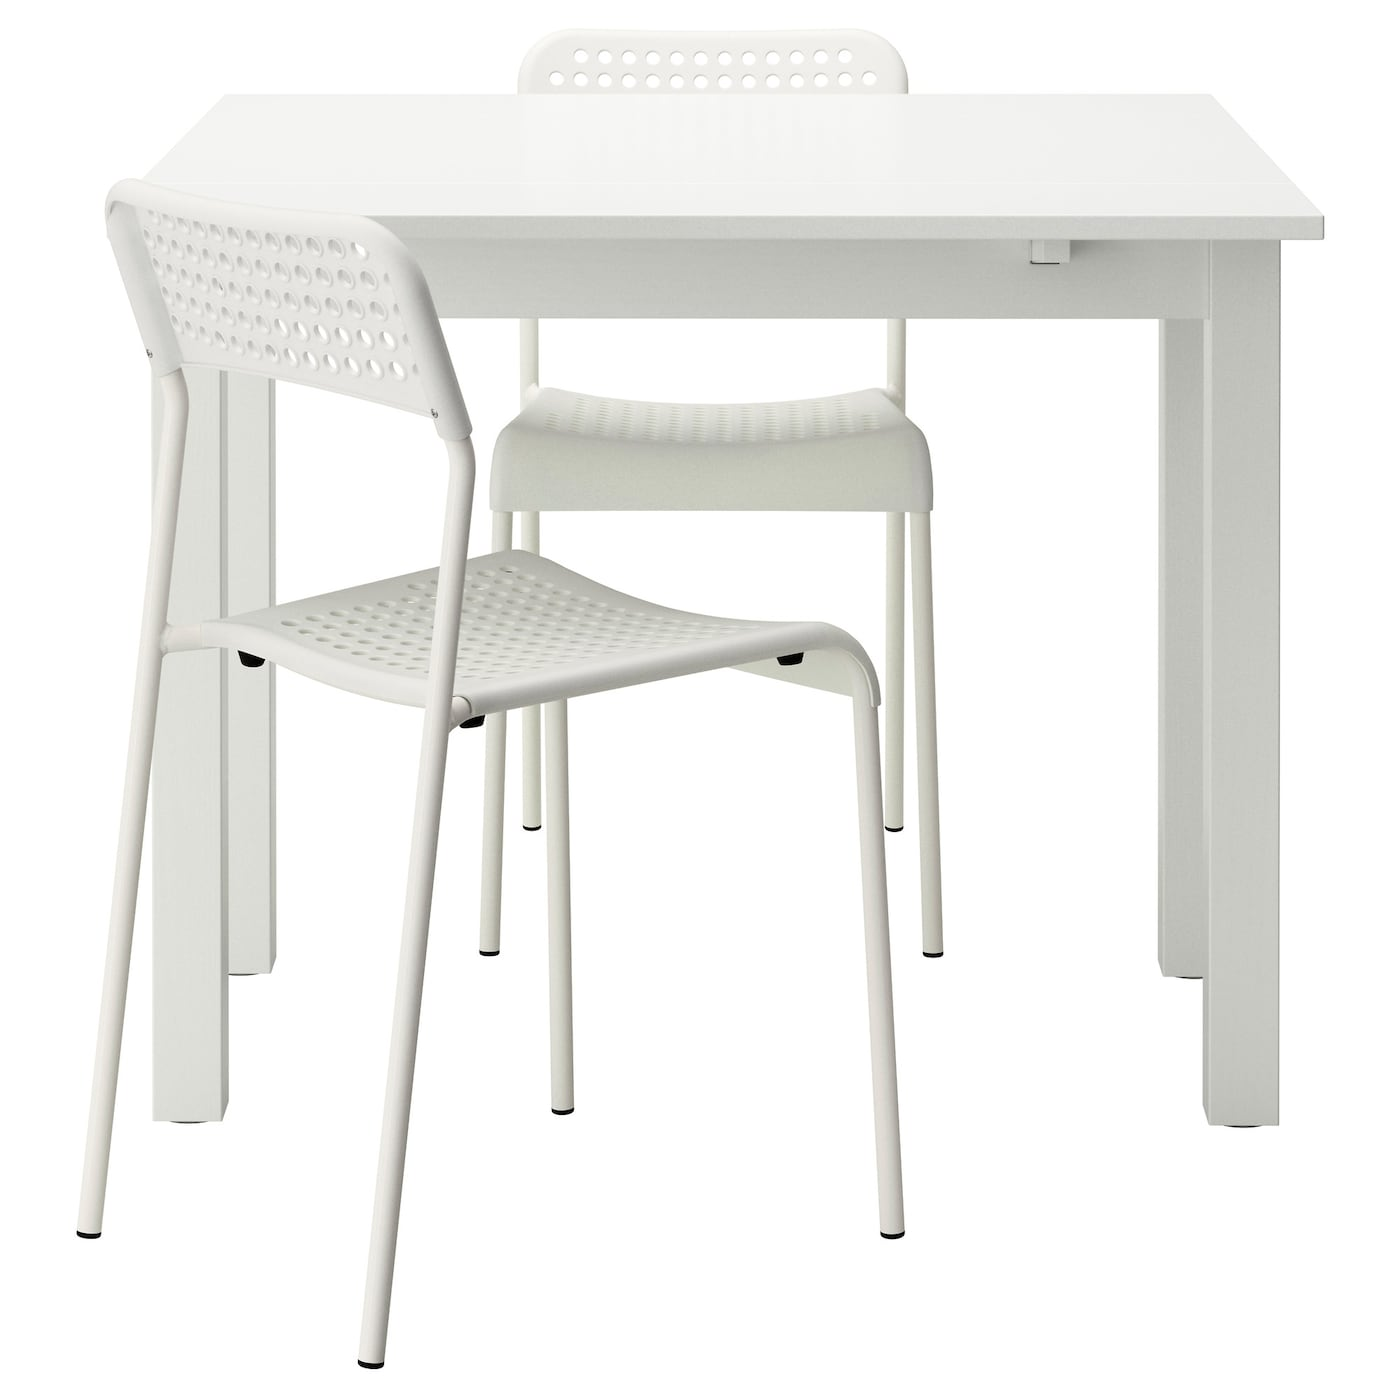 Table Et Chaise De Cuisine Ikea.Bjursta Adde Table And 2 Chairs White